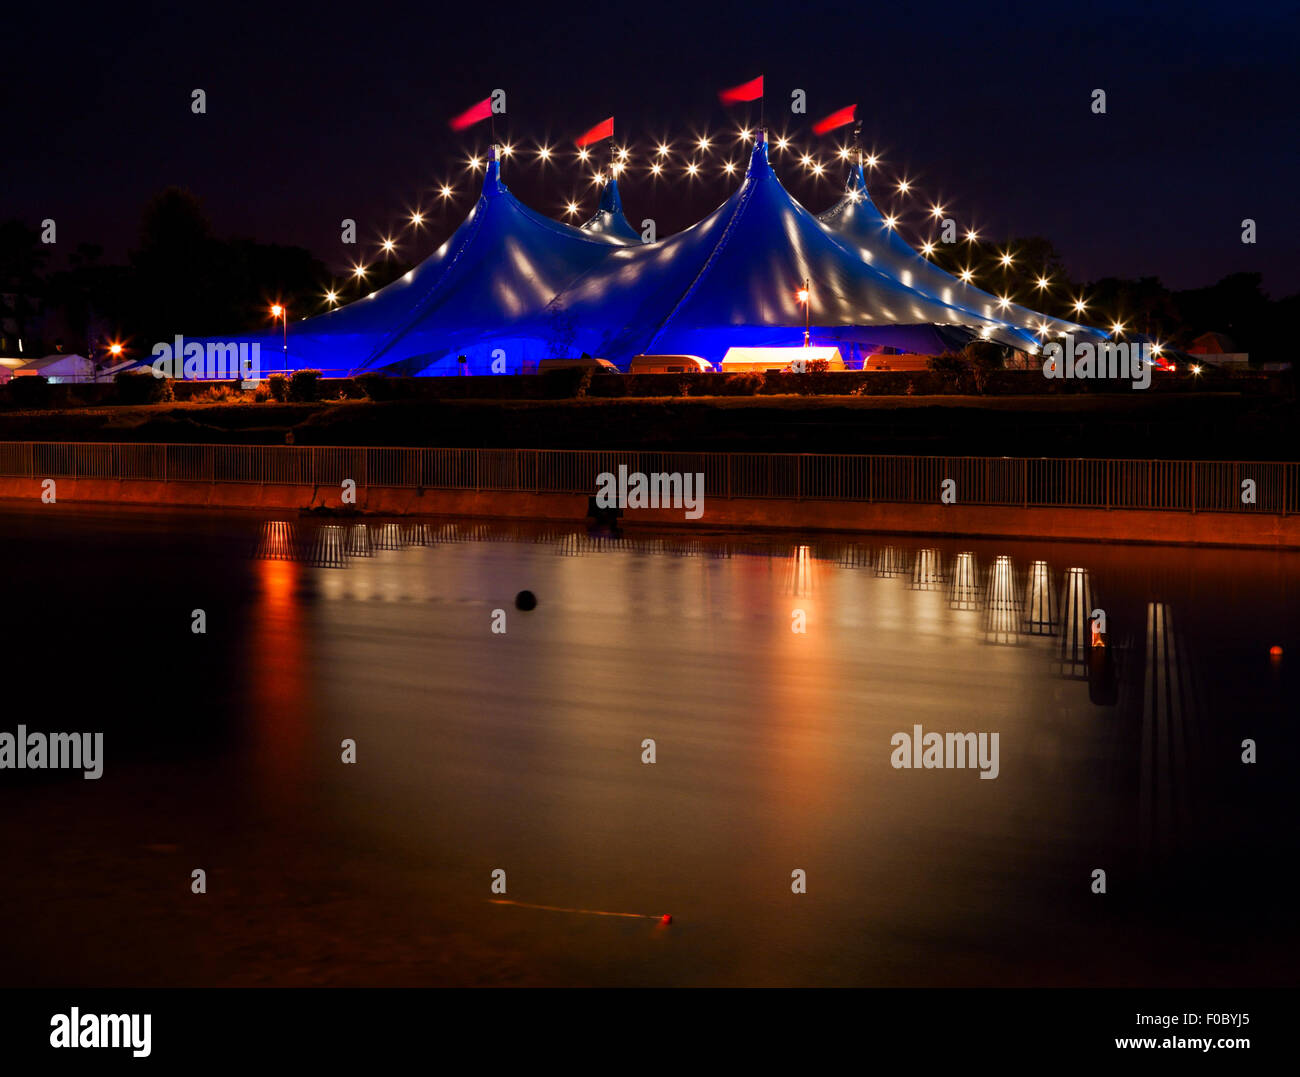 Big Top  circus style blue tent and row of lights on the bank of Corrib river in Galway Ireland.    sc 1 st  Alamy & Big Top